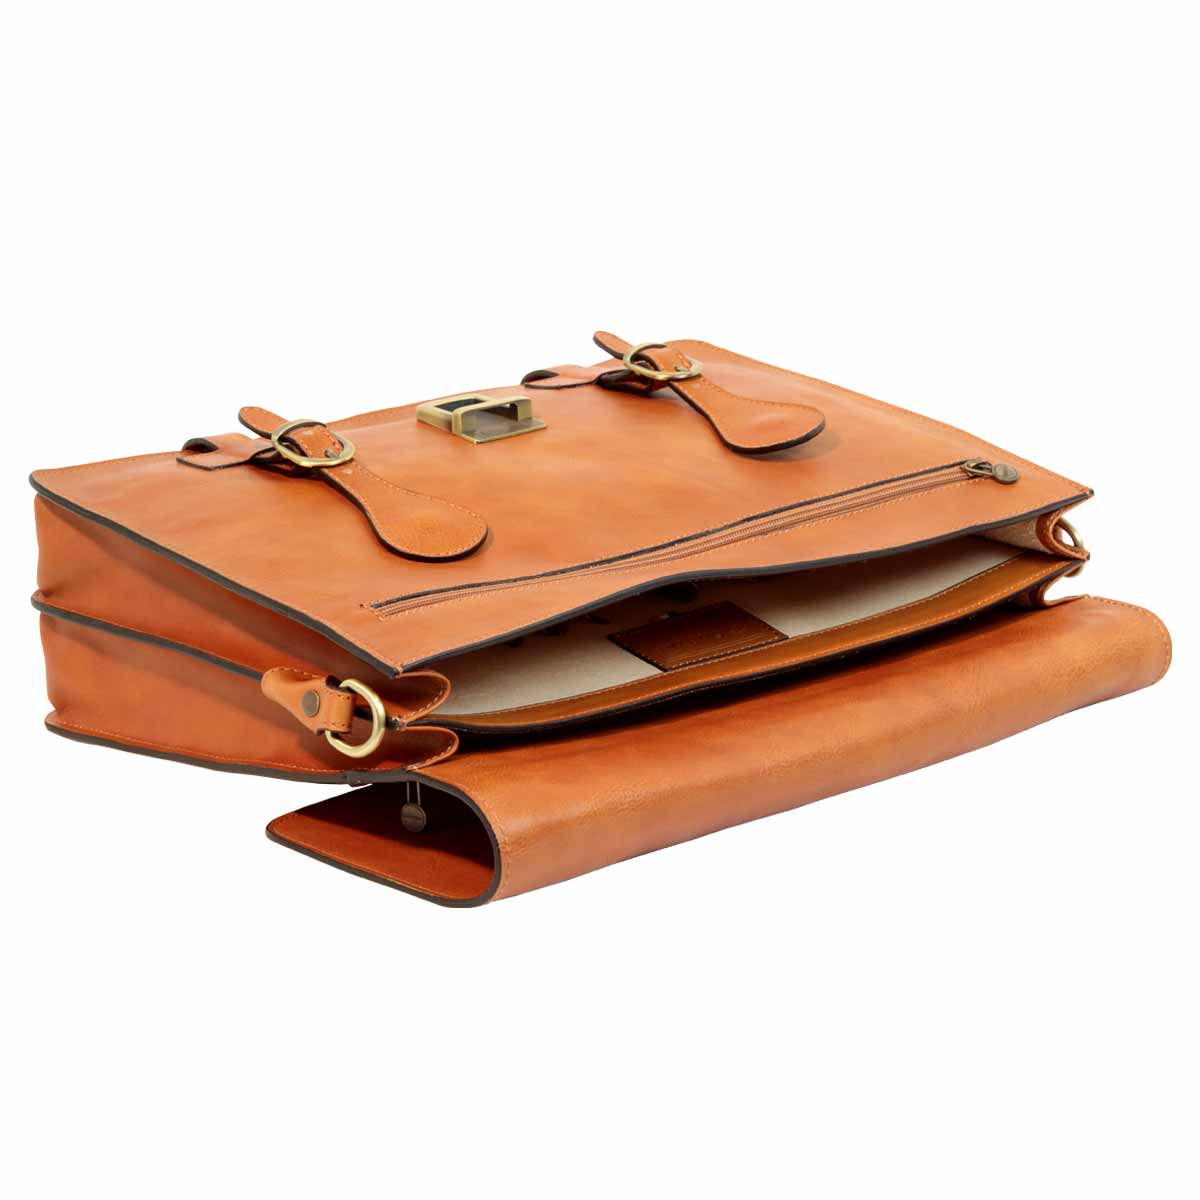 Leather Briefcase with buckle closures - Brown Colonial | 005389CO | EURO | Old Angler Firenze